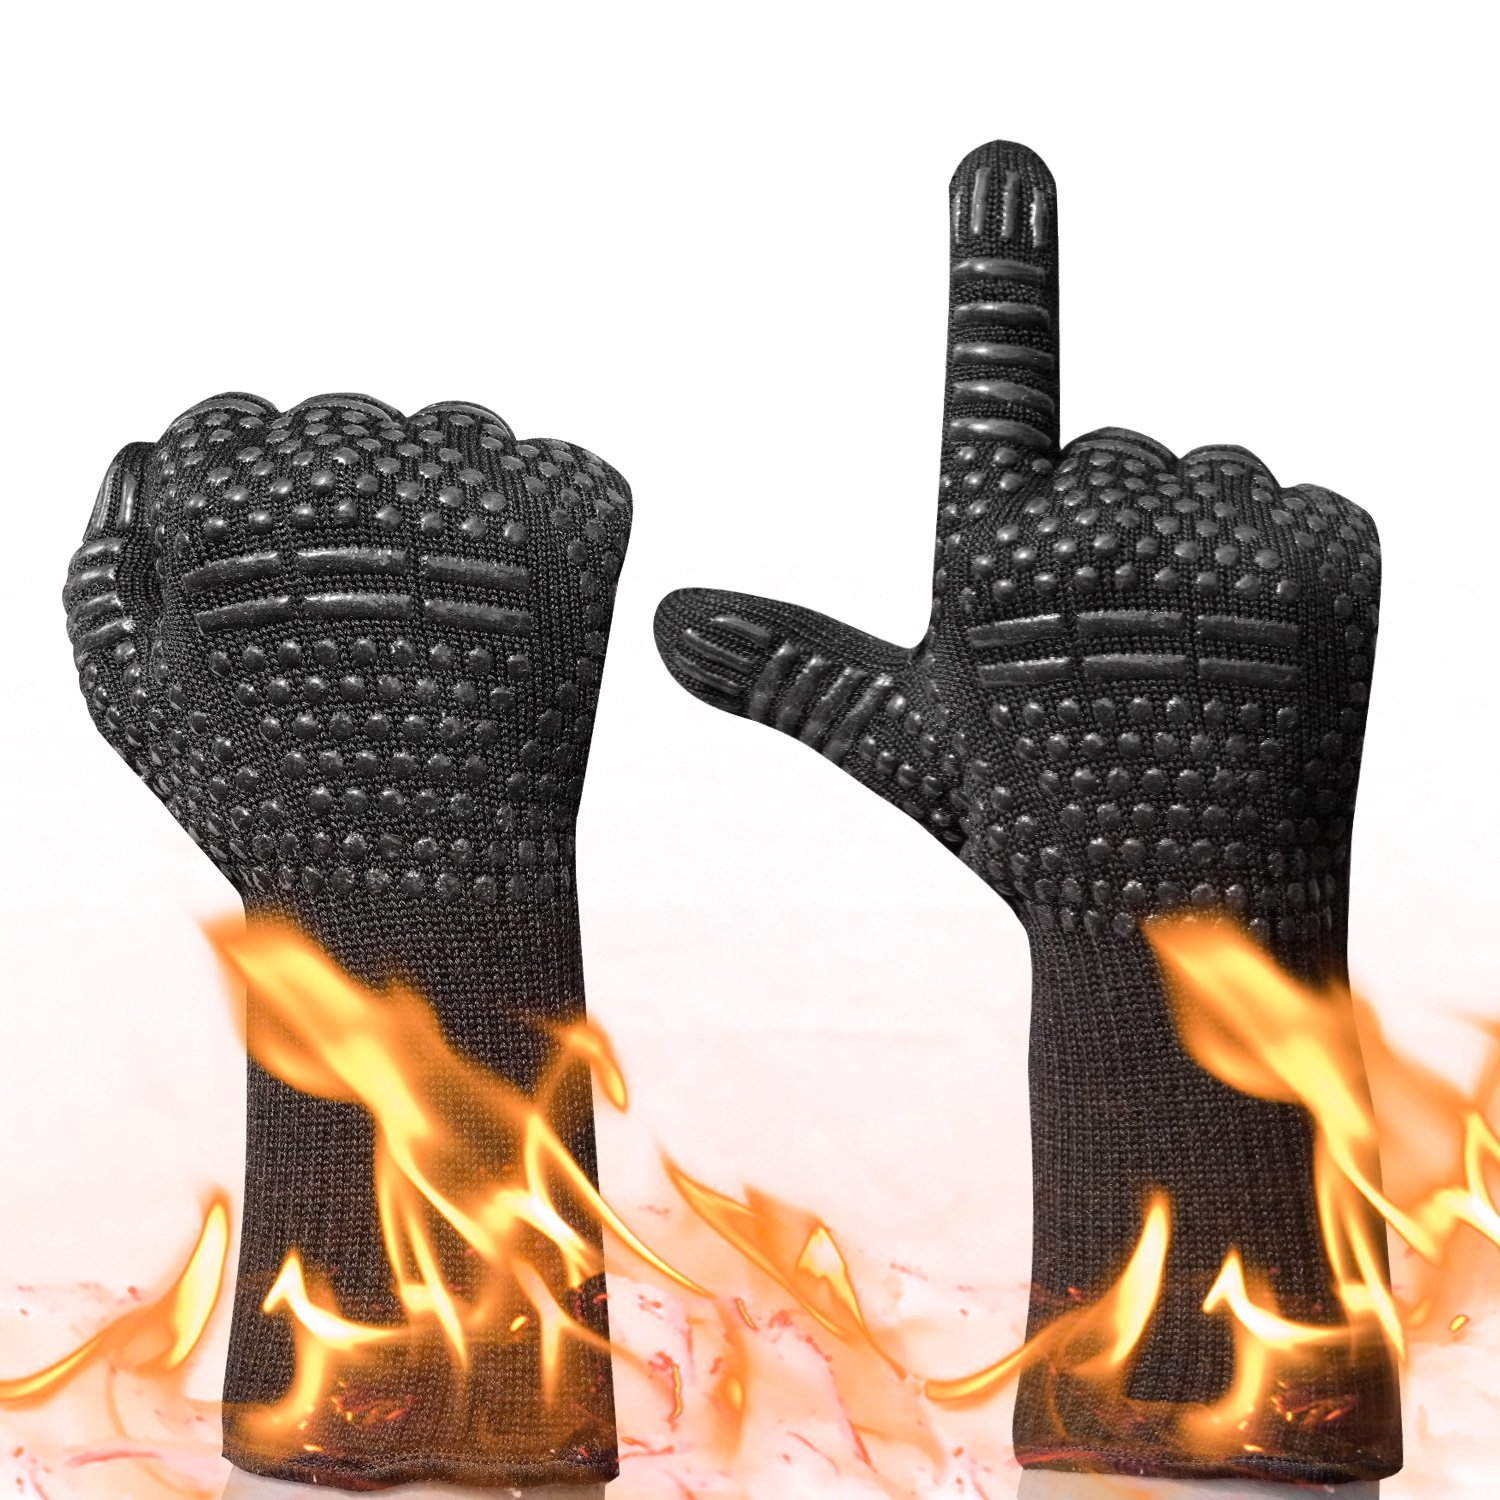 BBQ Grilling Gloves,932°F Heat Resistant Oven Mitts Comfortable Wearing Gloves, Barbecue Gloves for Men Women, 13.8(inch) Long for Extra Forearm Protection, 1 Pair (Black) | Runwinker